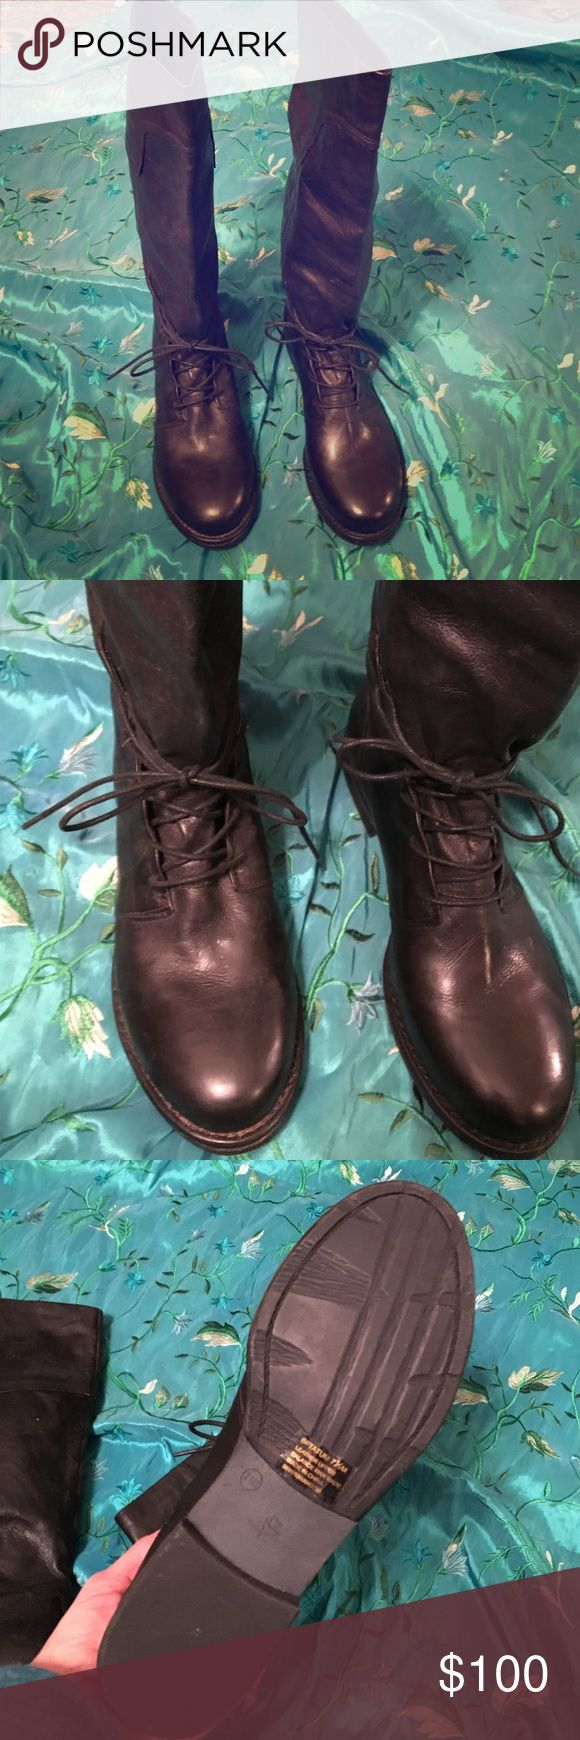 """B Makowsky boots NWOT Black leather boots . Shaft 14"""". Riding boot style never worn. b makowsky Shoes Lace Up Boots"""